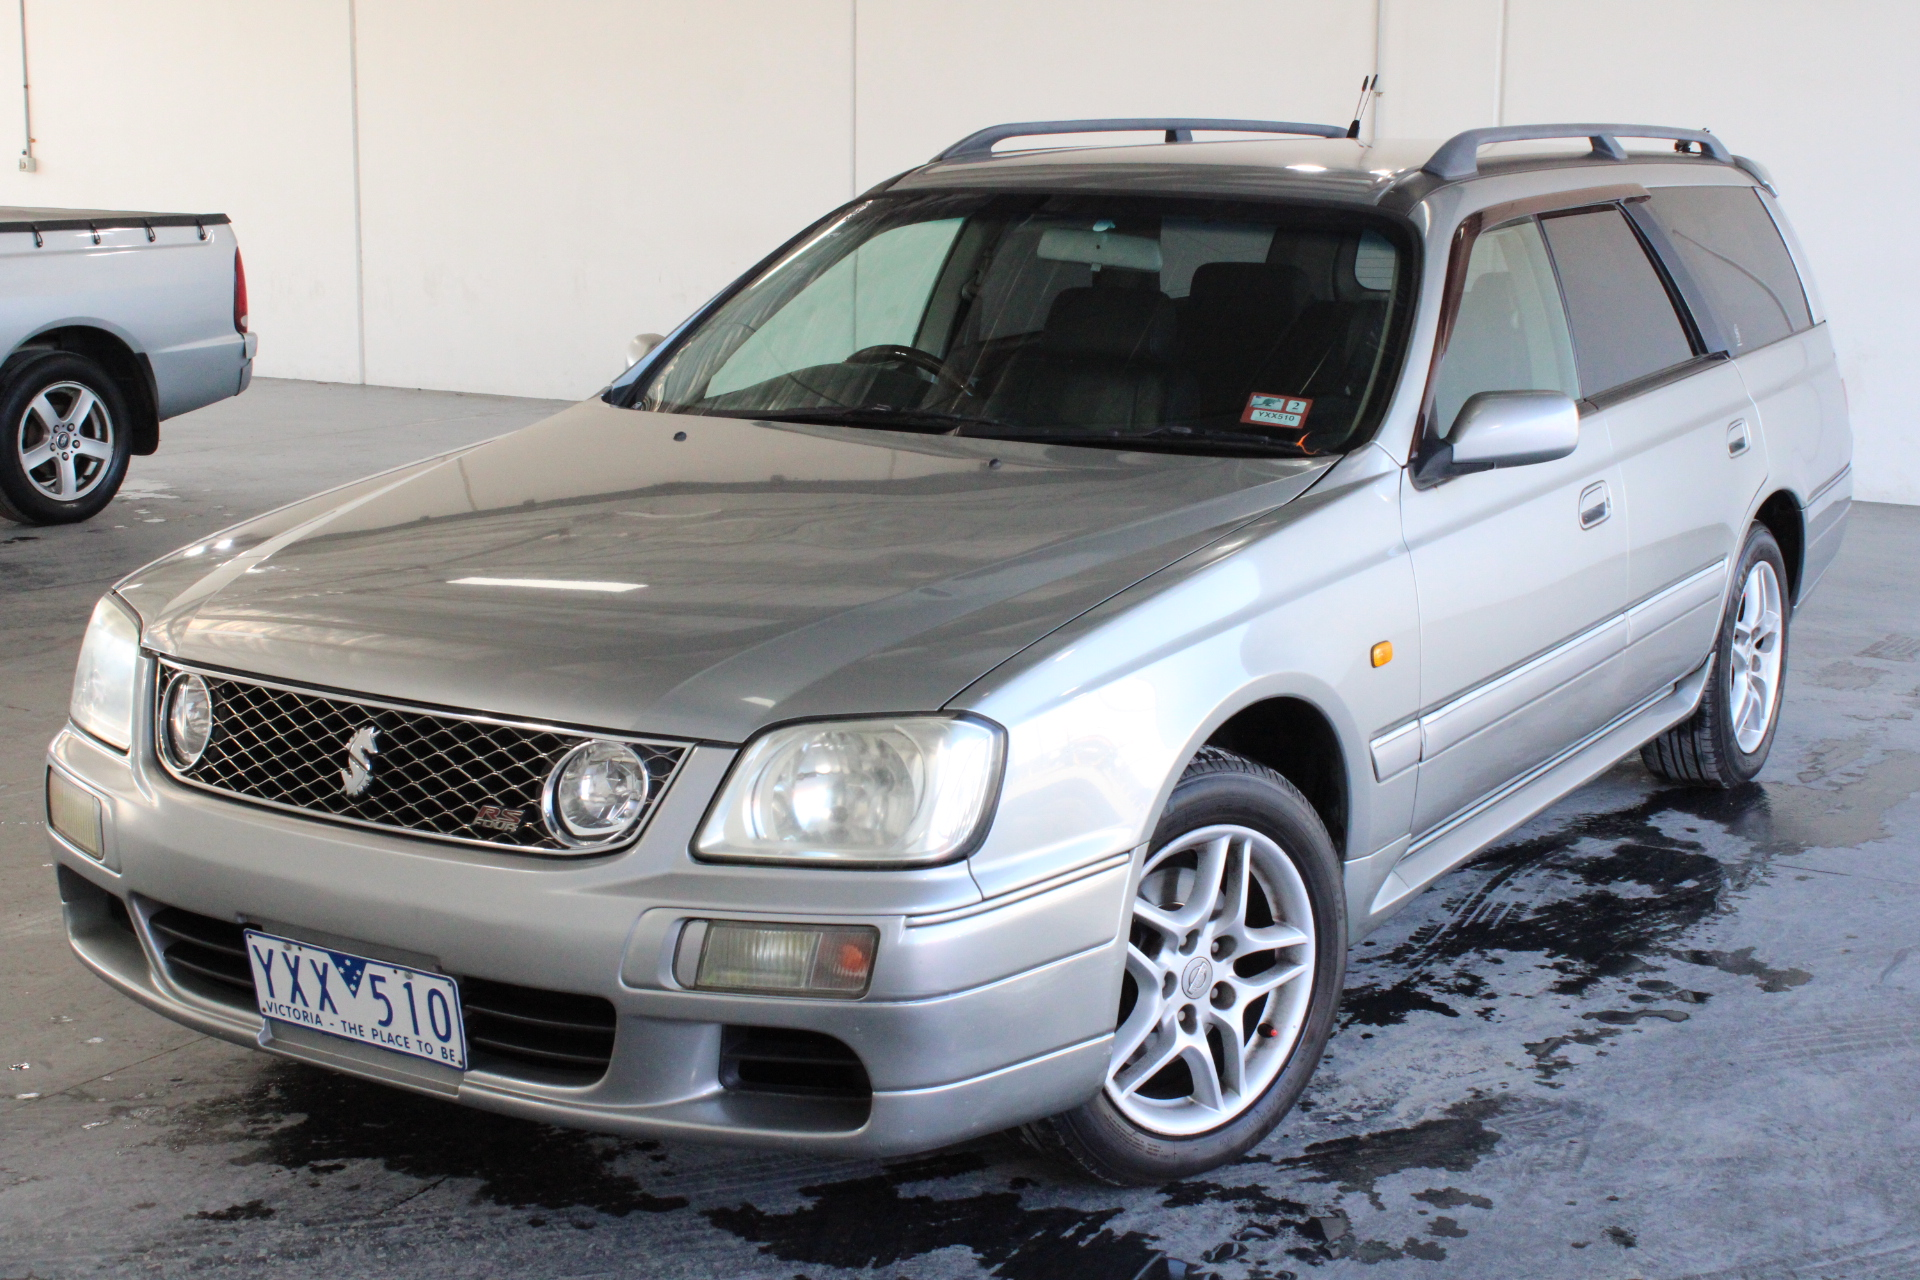 2011 Nissan Stagea Automatic Wagon